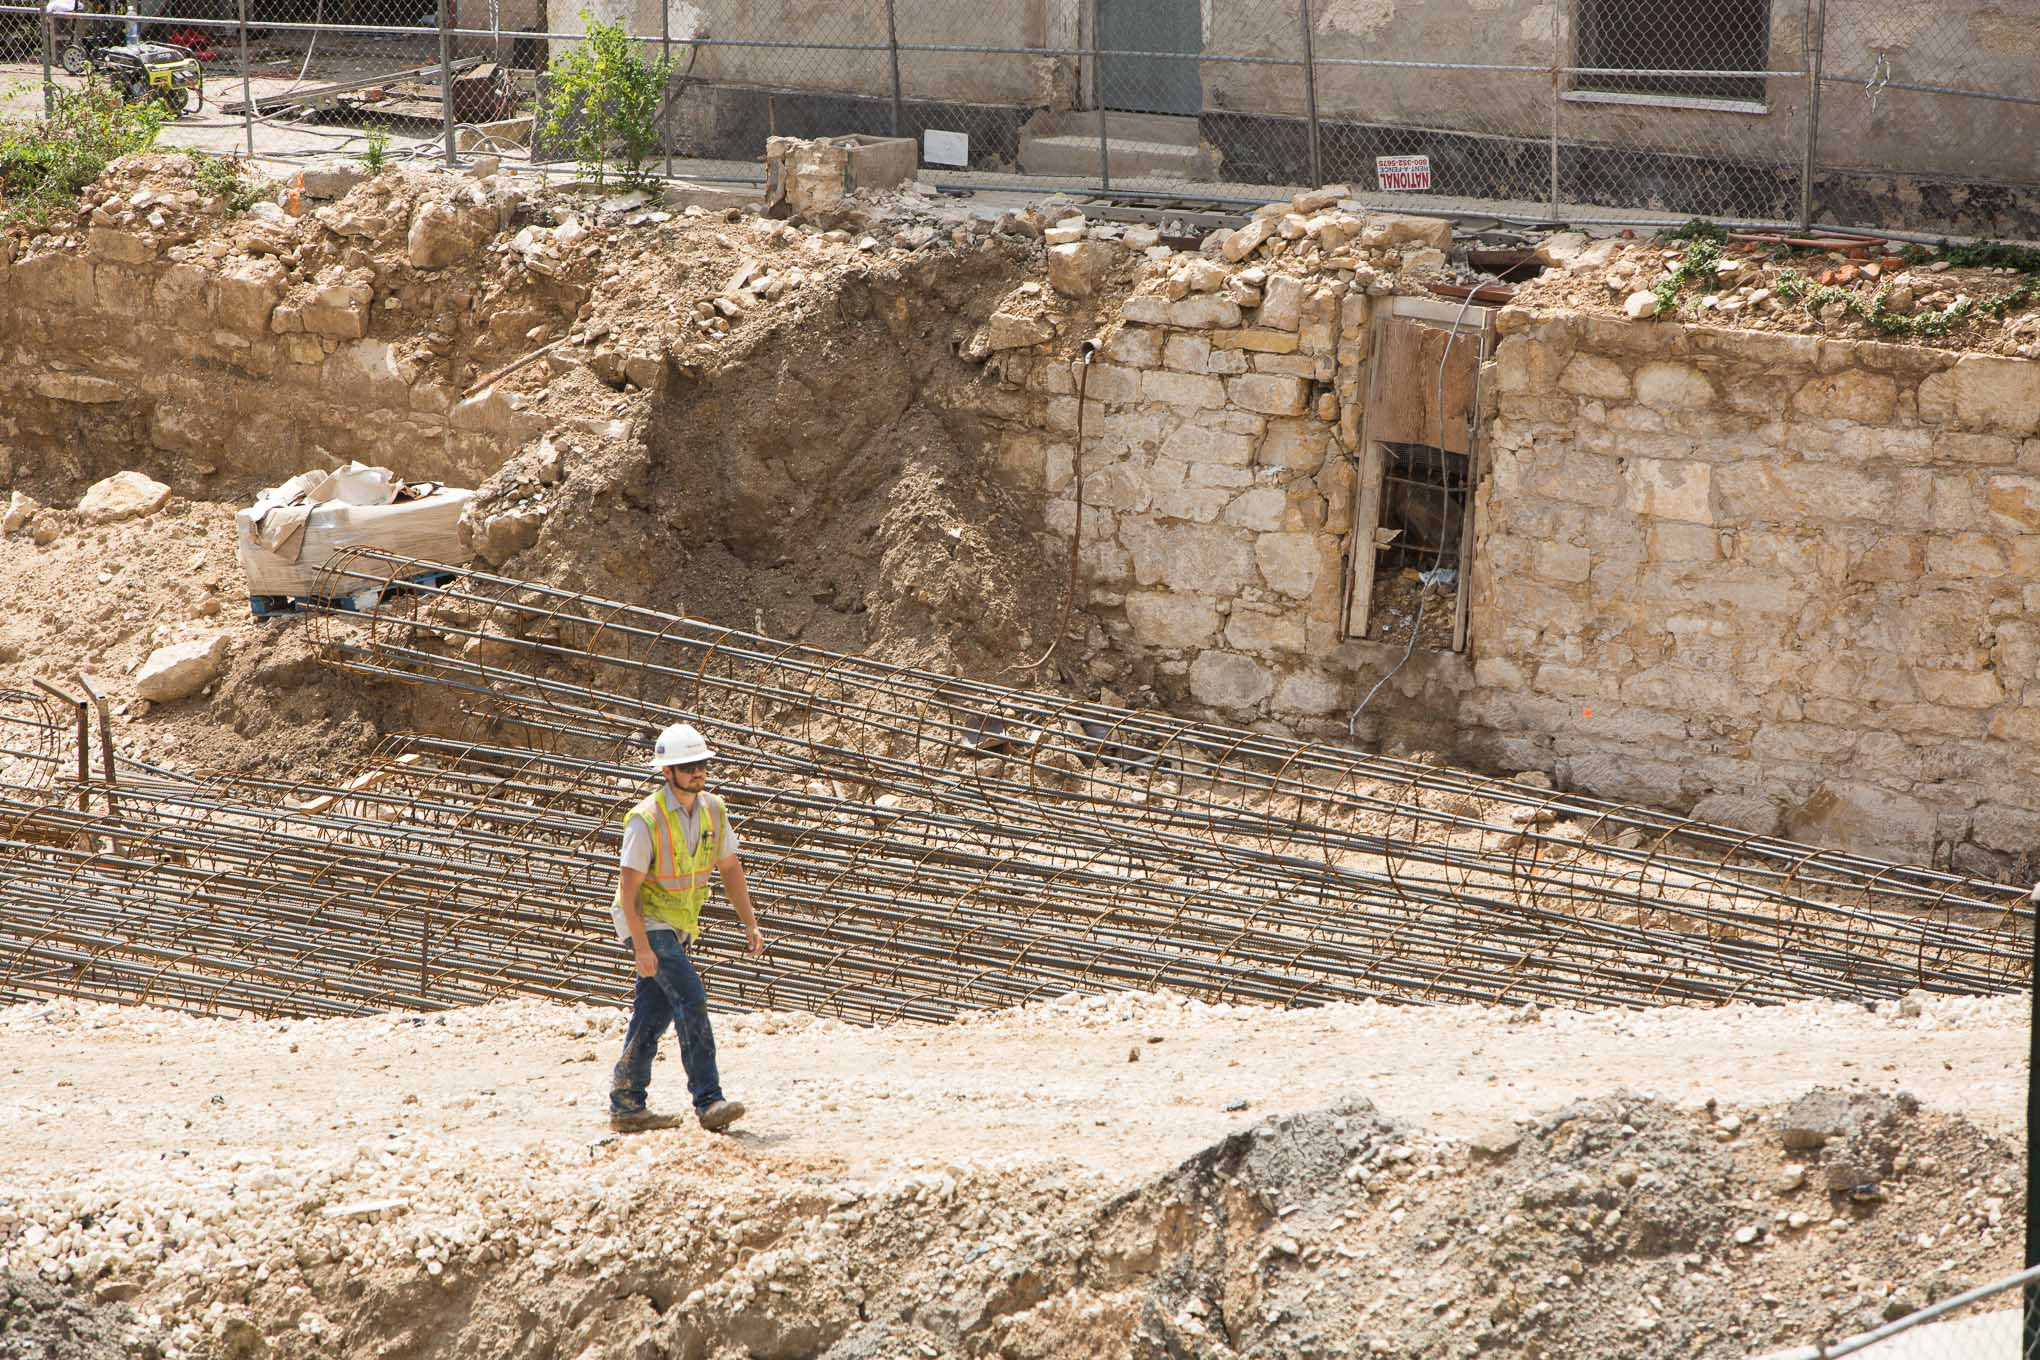 Construction crews work on the development project alongside historic wall structures where the Solo Serve building once stood.